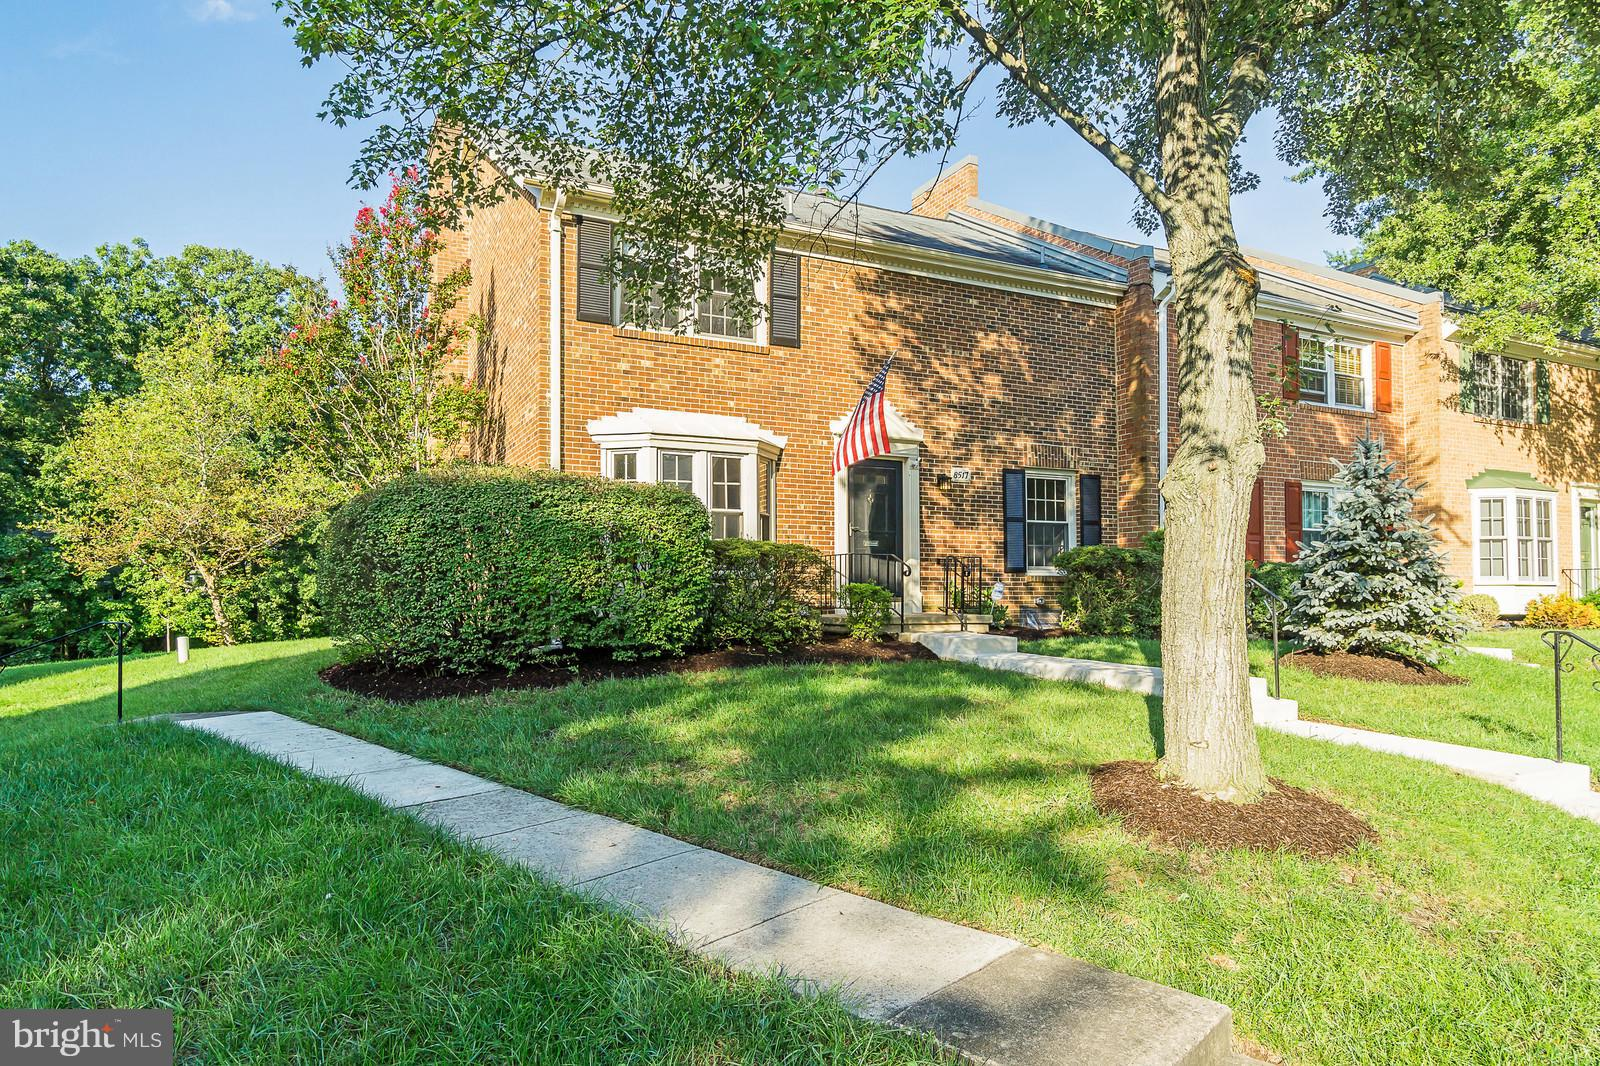 Stunning, all brick townhome with brick walls surrounding the serene backyard. Main level bedroom, large master bedroom with huge walk-in closet, large rec room & living room, eat-in kitchen, large pantry, curved staircase, two oversized sliding glass doors to the backyard, two parking spots & ample visitor street parking, and so much more! Close to Whole Foods & tons of shopping. Original owner!